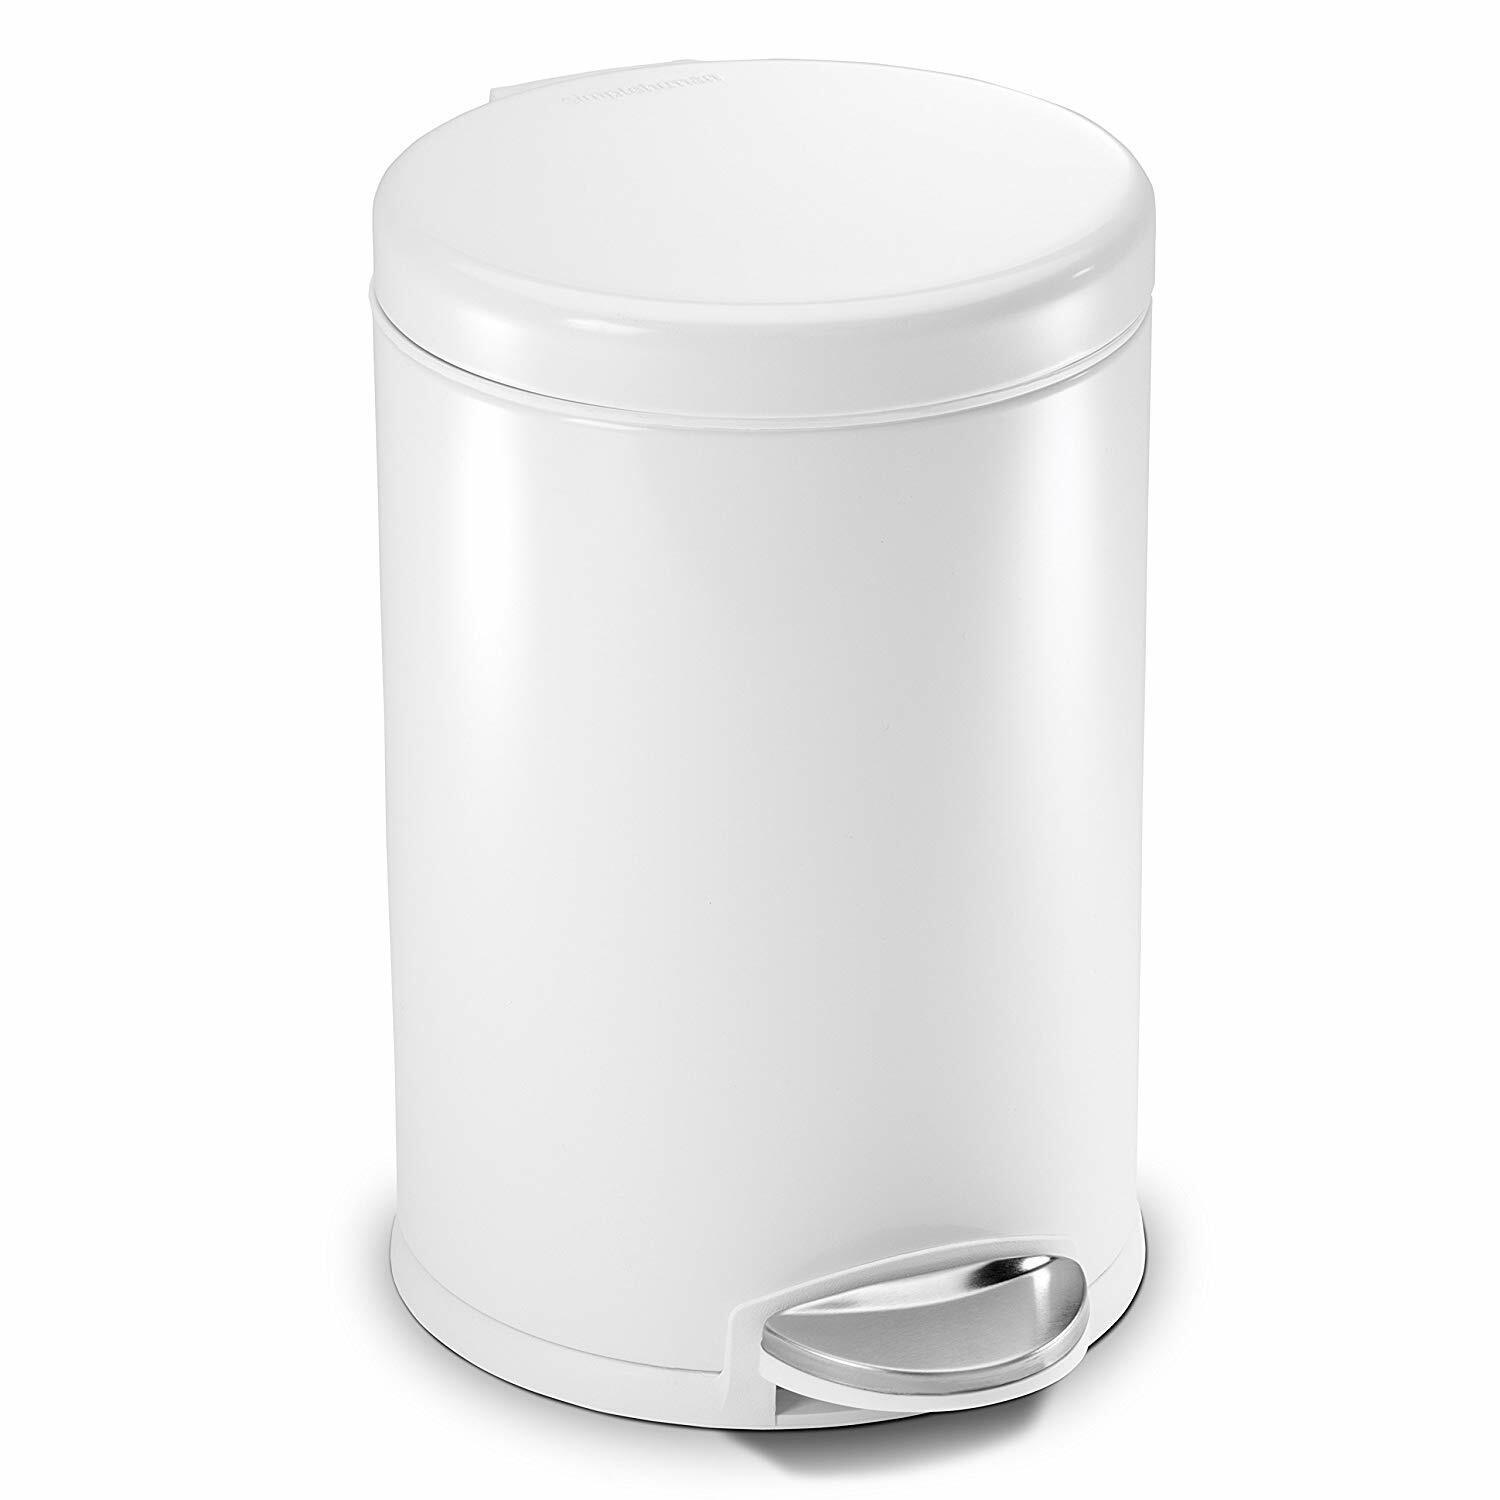 Silver 5 Liter//1.3 Gallon Small Round Stainless Steel Step Trash Can